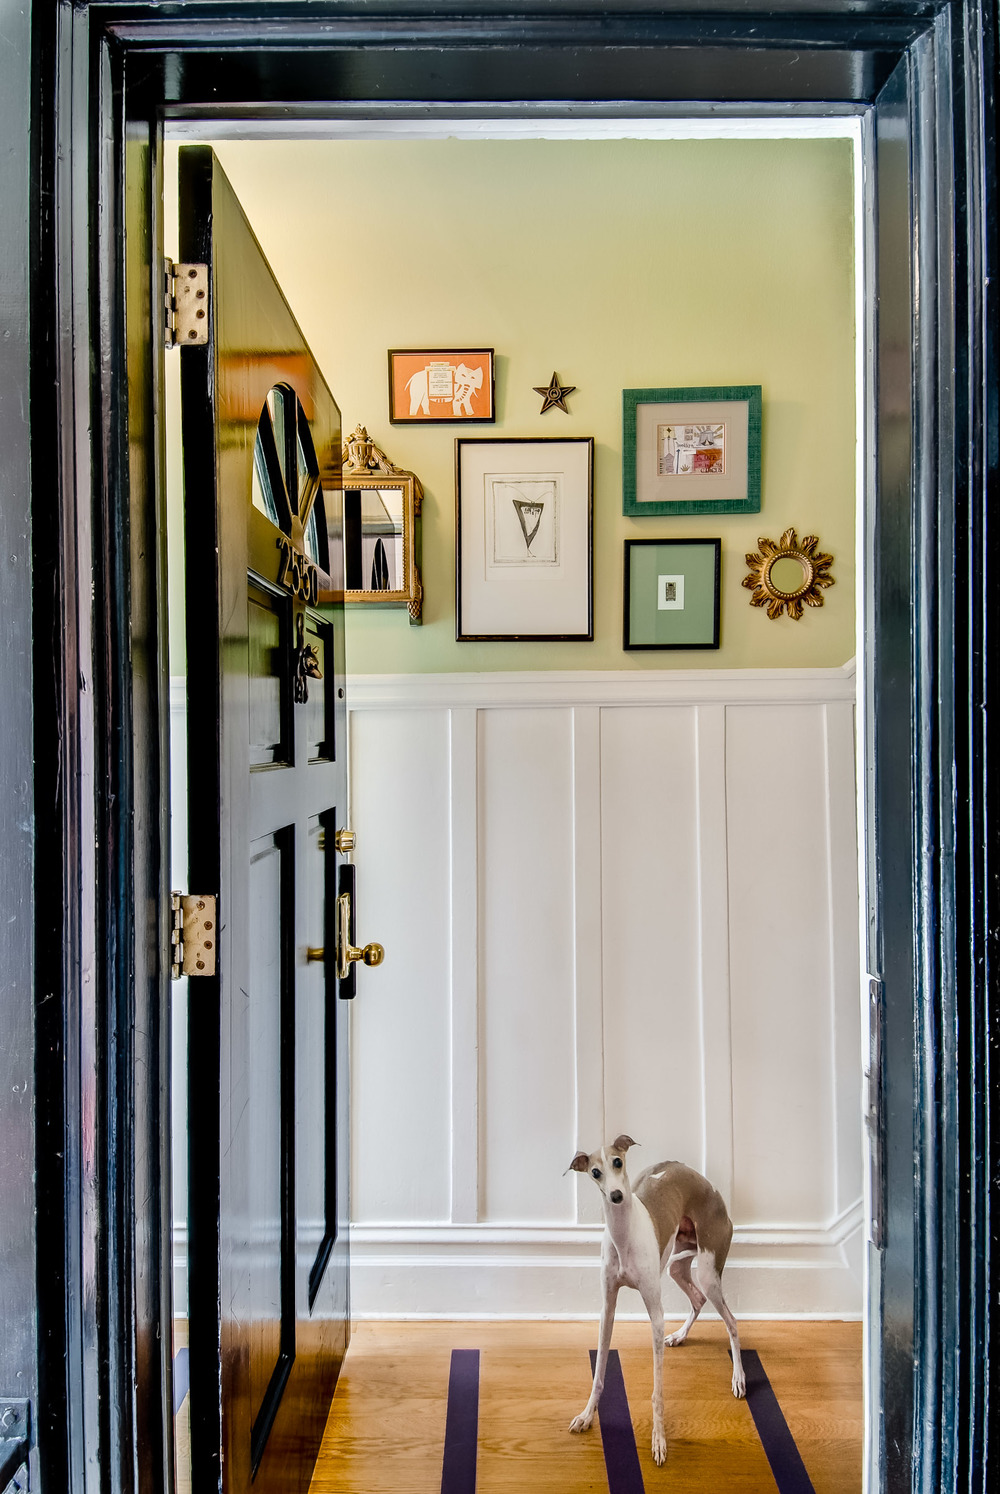 Edwardian Foyer, San Francisco, CA Photographed for Nesting Newbies Ezine and Northbrook Design.